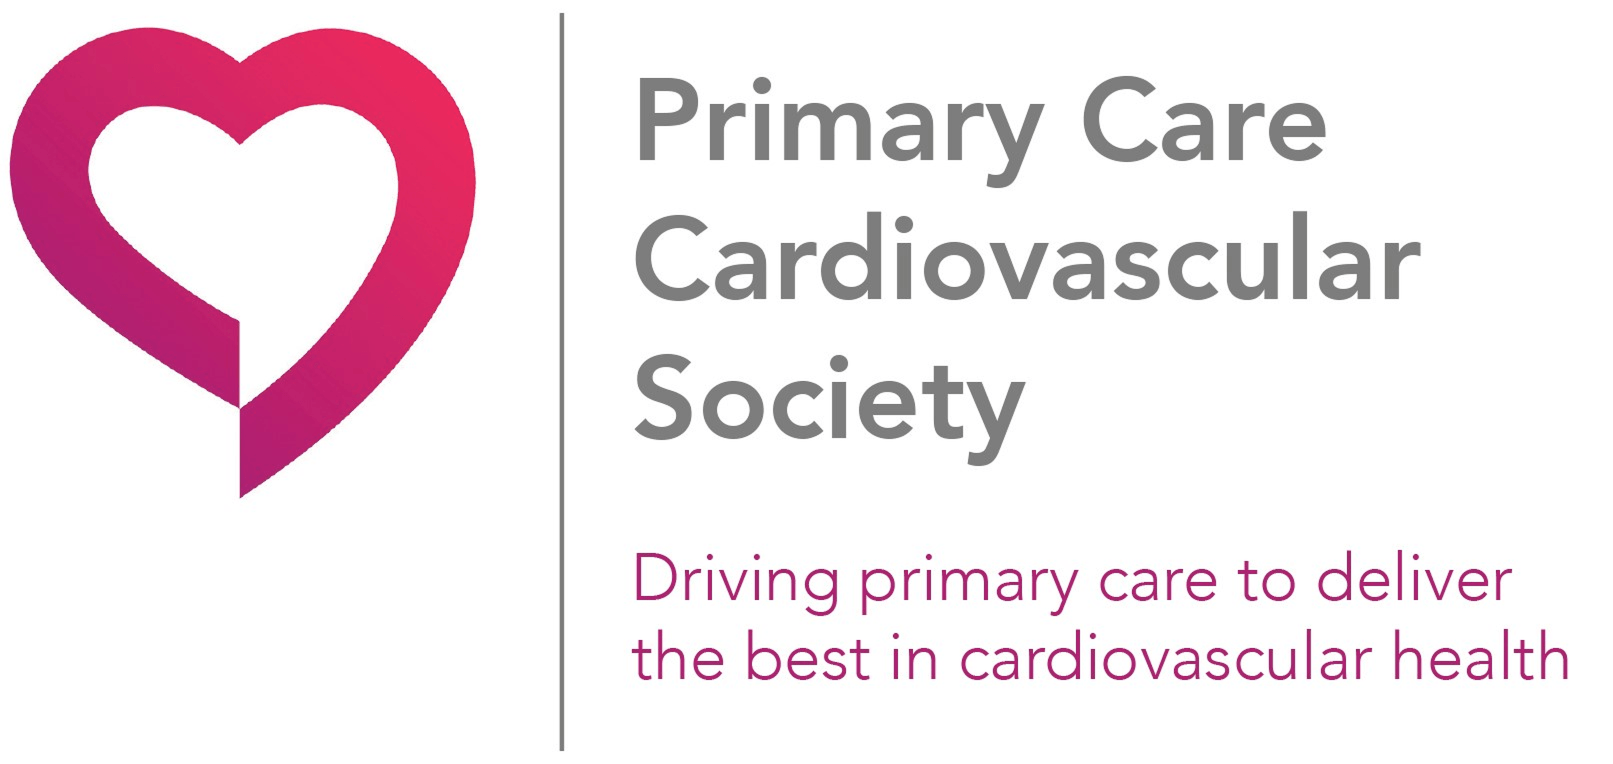 Primary Care Cardiovascular Society